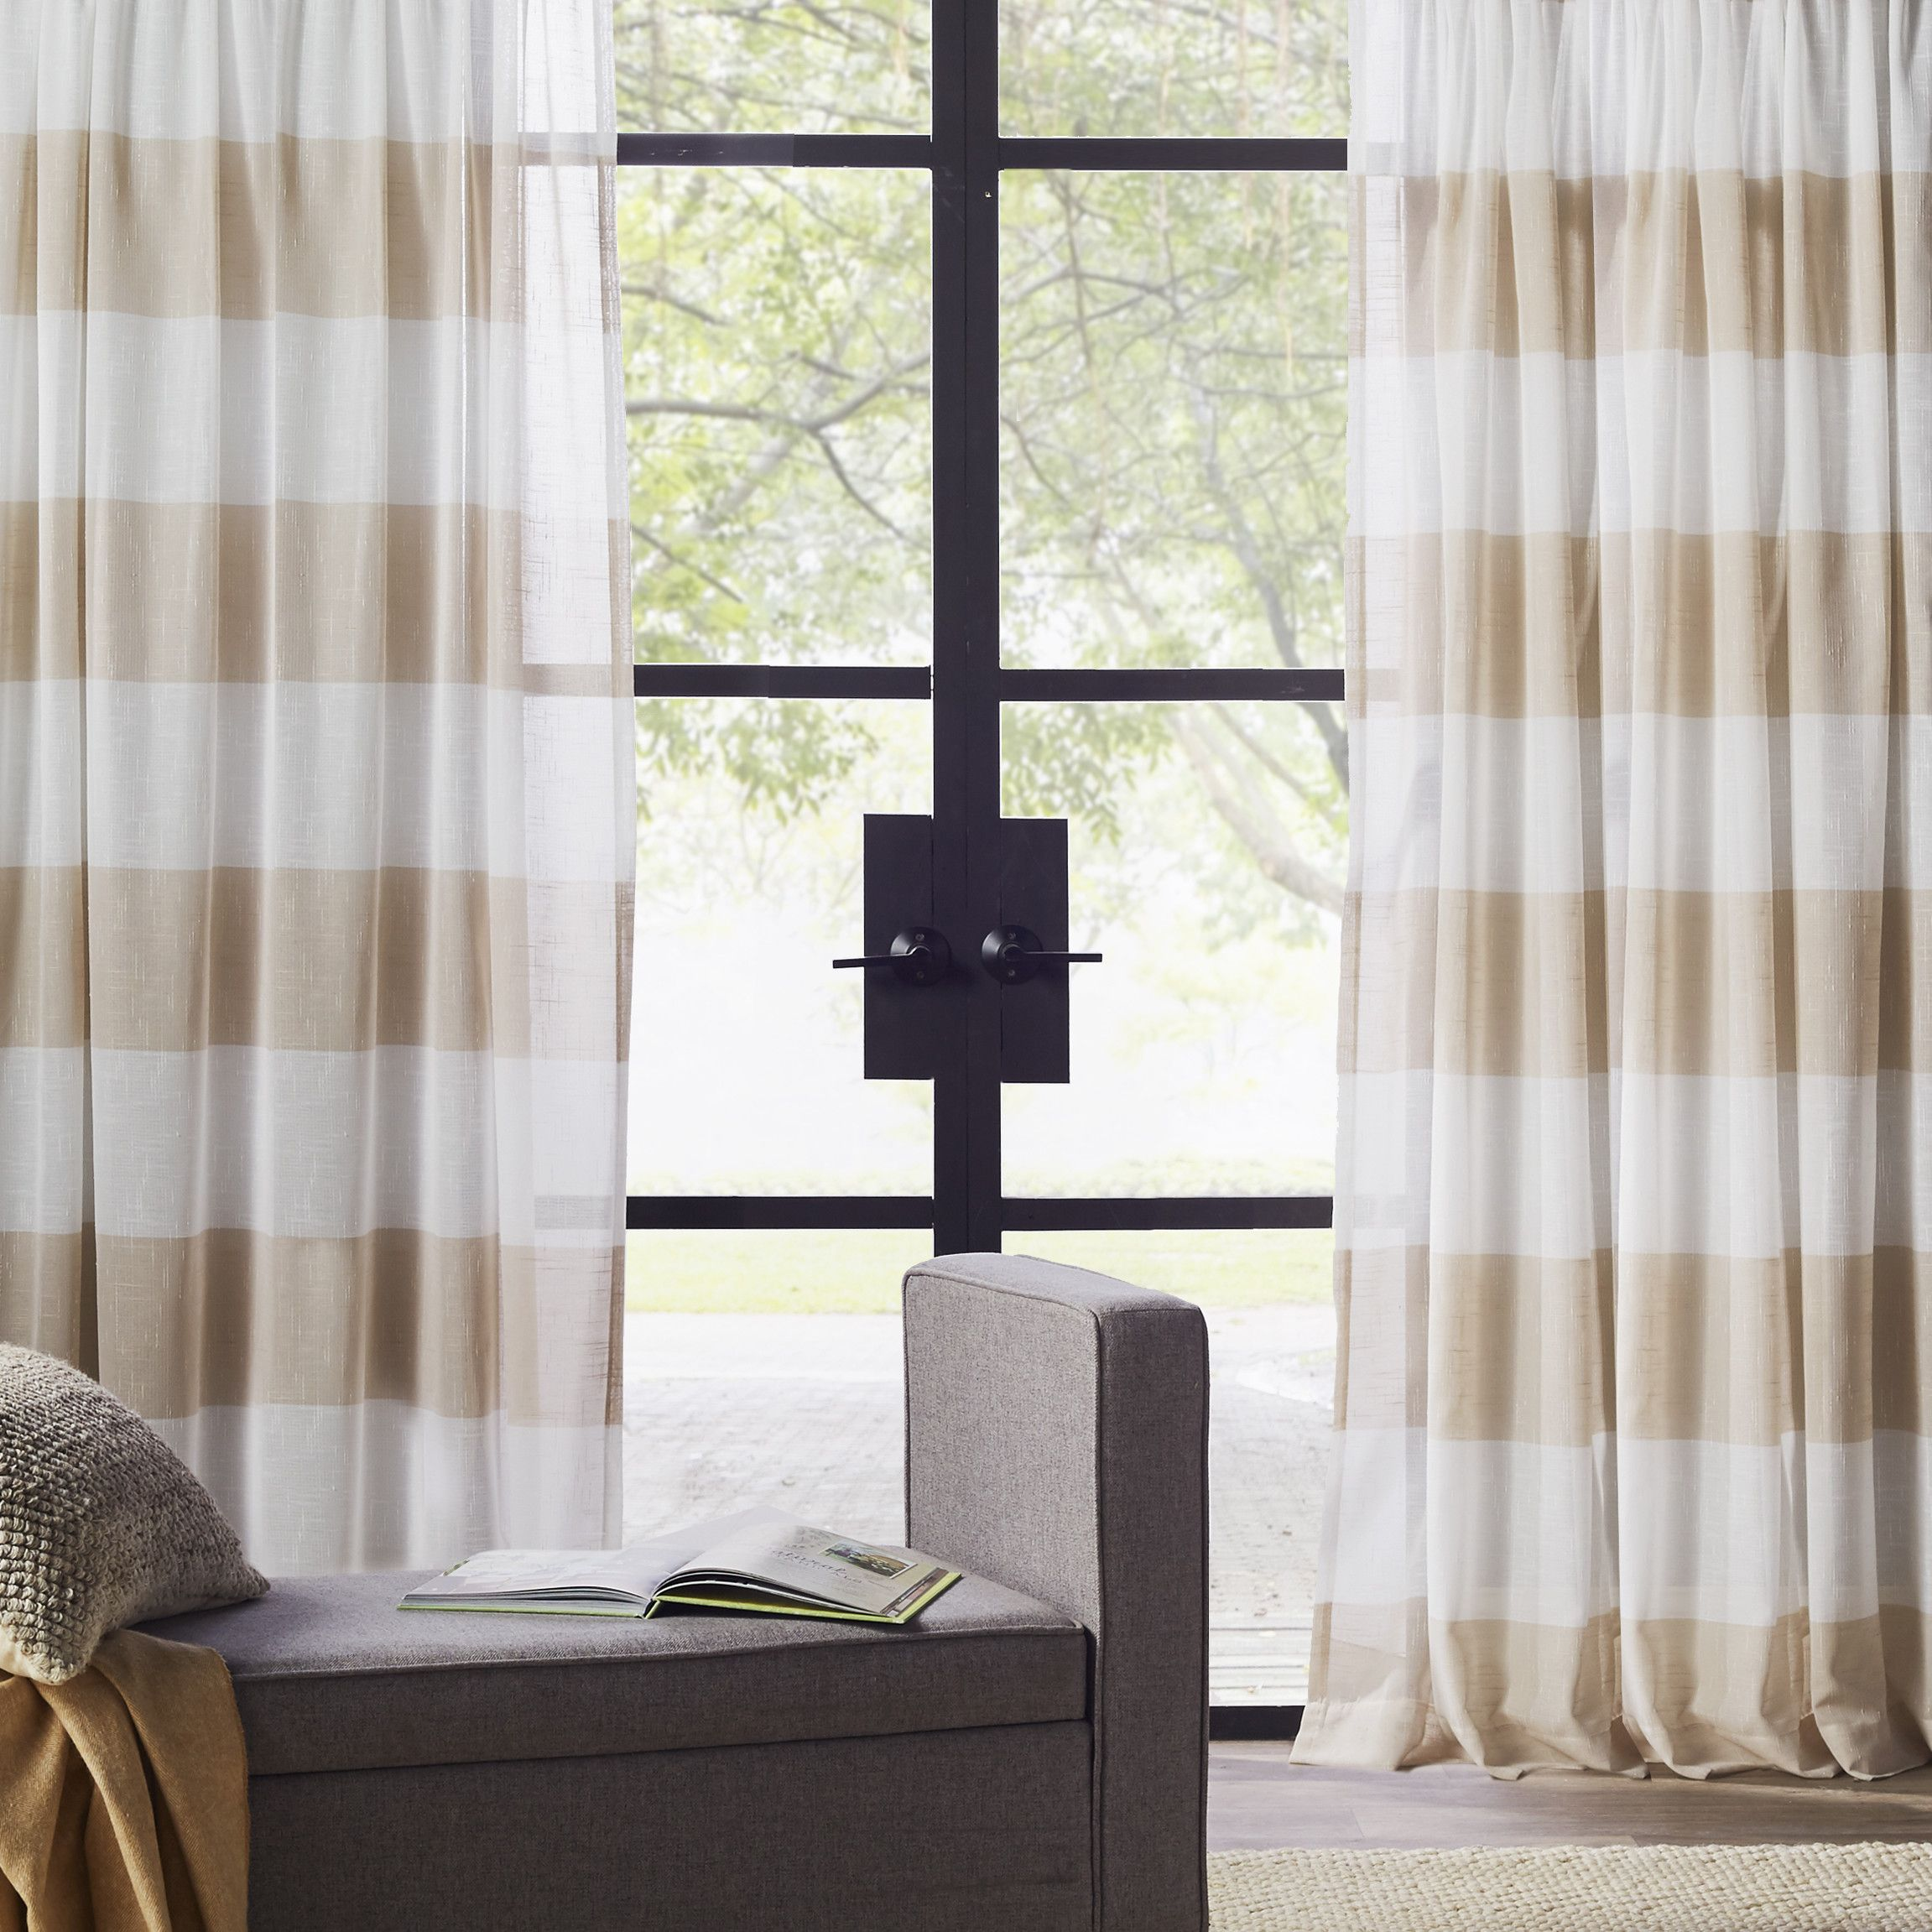 Amalgamated Textiles Exclusive Home Curtain Panels & Reviews - Wayfair